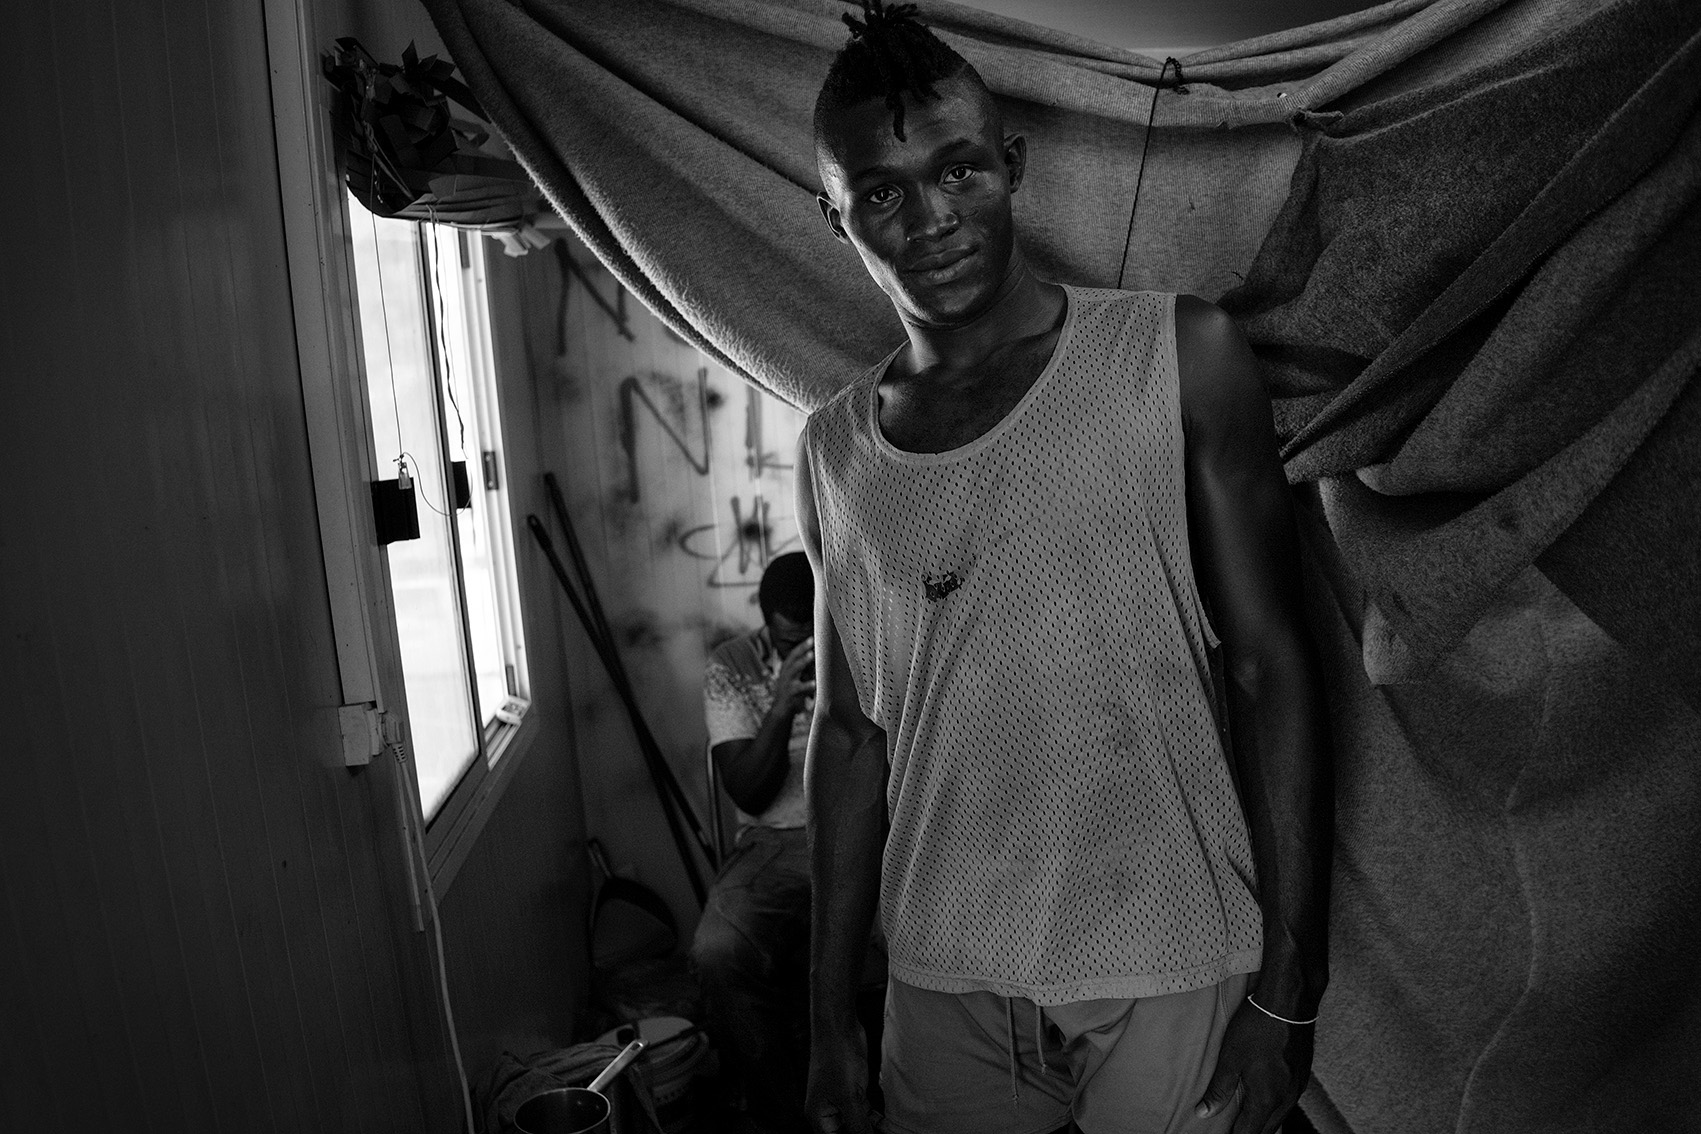 Ali, a professional football player from Guinee, inside his container at the refugee camp Moria. He lives together with 4 other refugees from Africa, their beds divided by blankets, Lesvos, Greece.